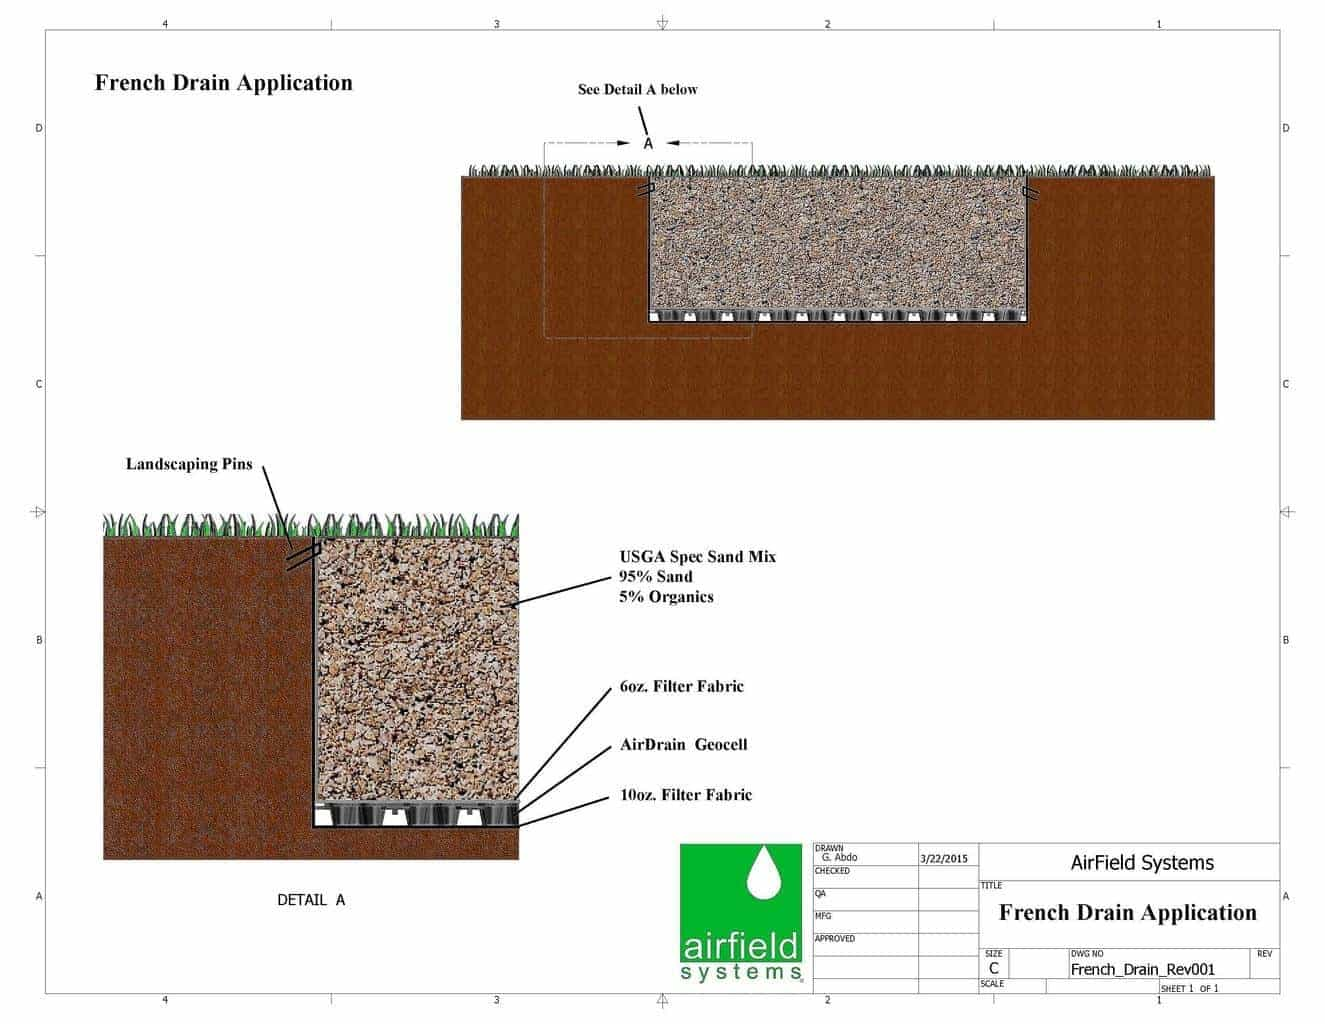 french drain, Fake grass, Turf, Accelerated drainage system, agronomic, LEED, landscape, athletic field, green roof, softball, baseball, football, soccer, lacrosse, bocce, tee boxes, golf greens, sub-surface, sports field, natural turf, sand profile, USGA, swale, bio swale, sand traps, bunkers, NFL, water retention, perched water table, water reuse, storm water management,